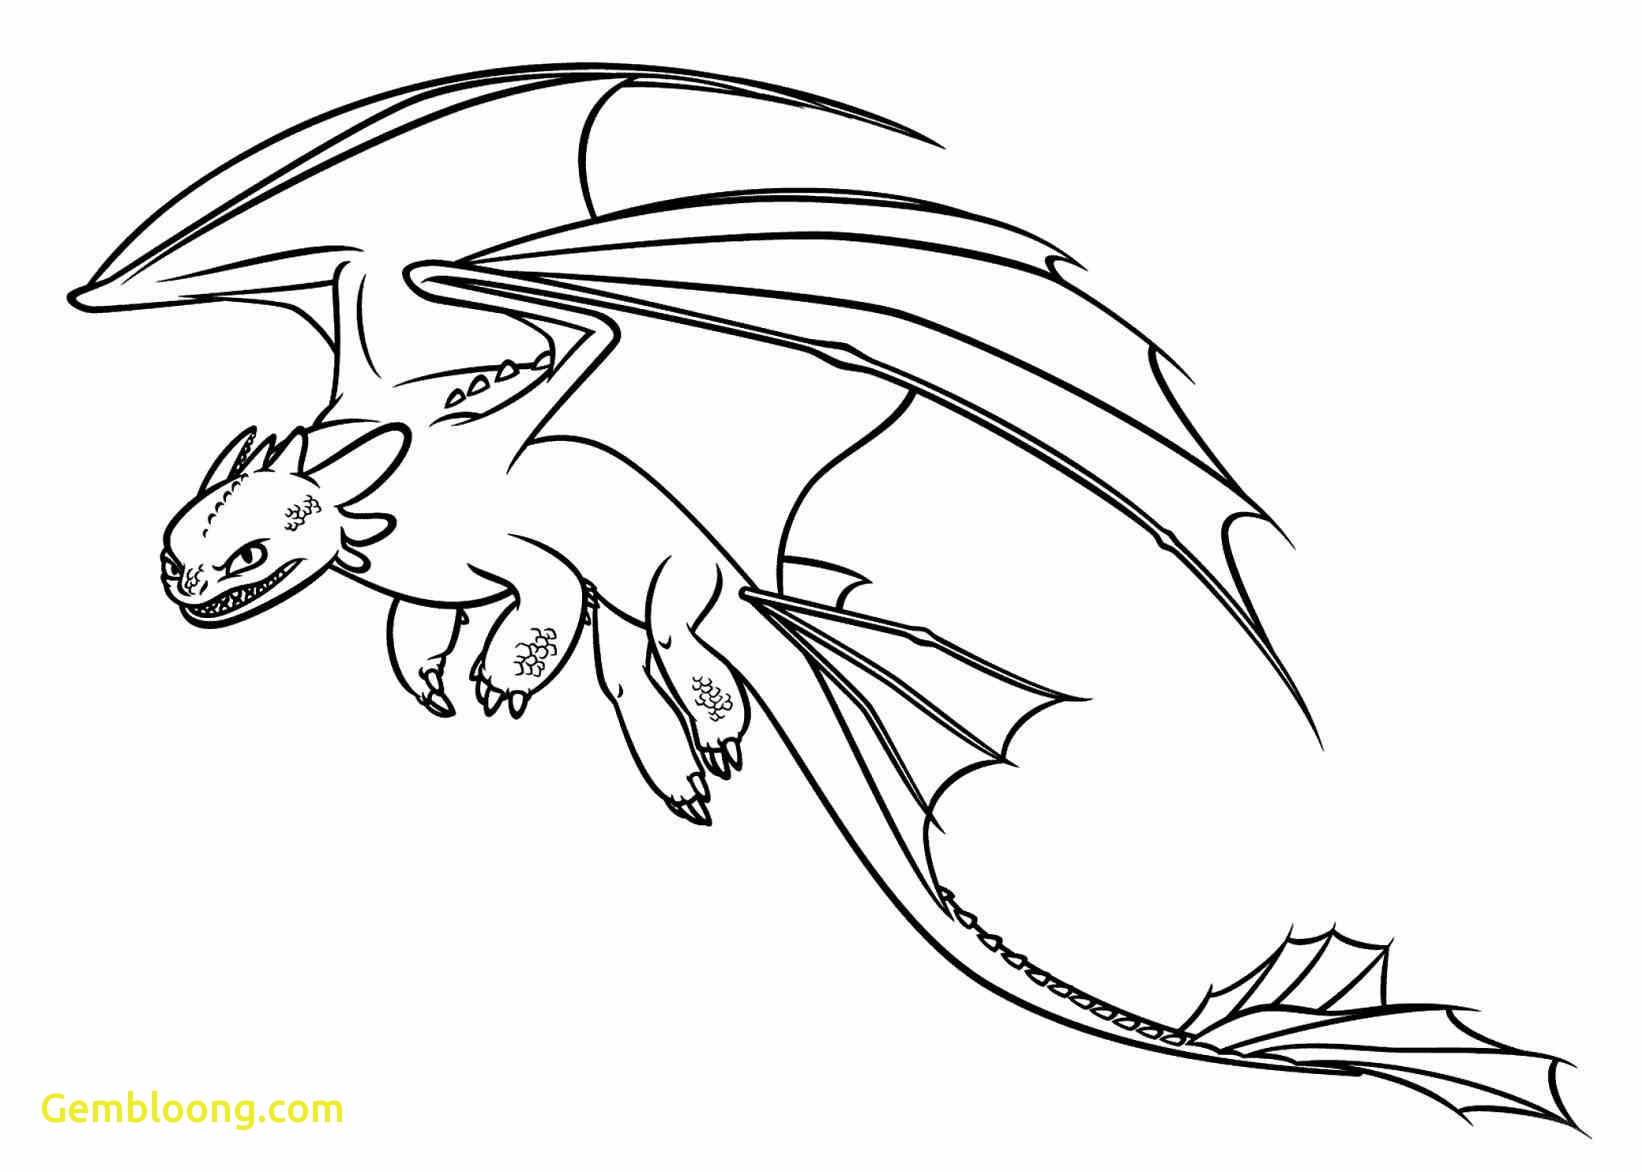 1642x1172 How To Train Your Dragon Coloring Pages